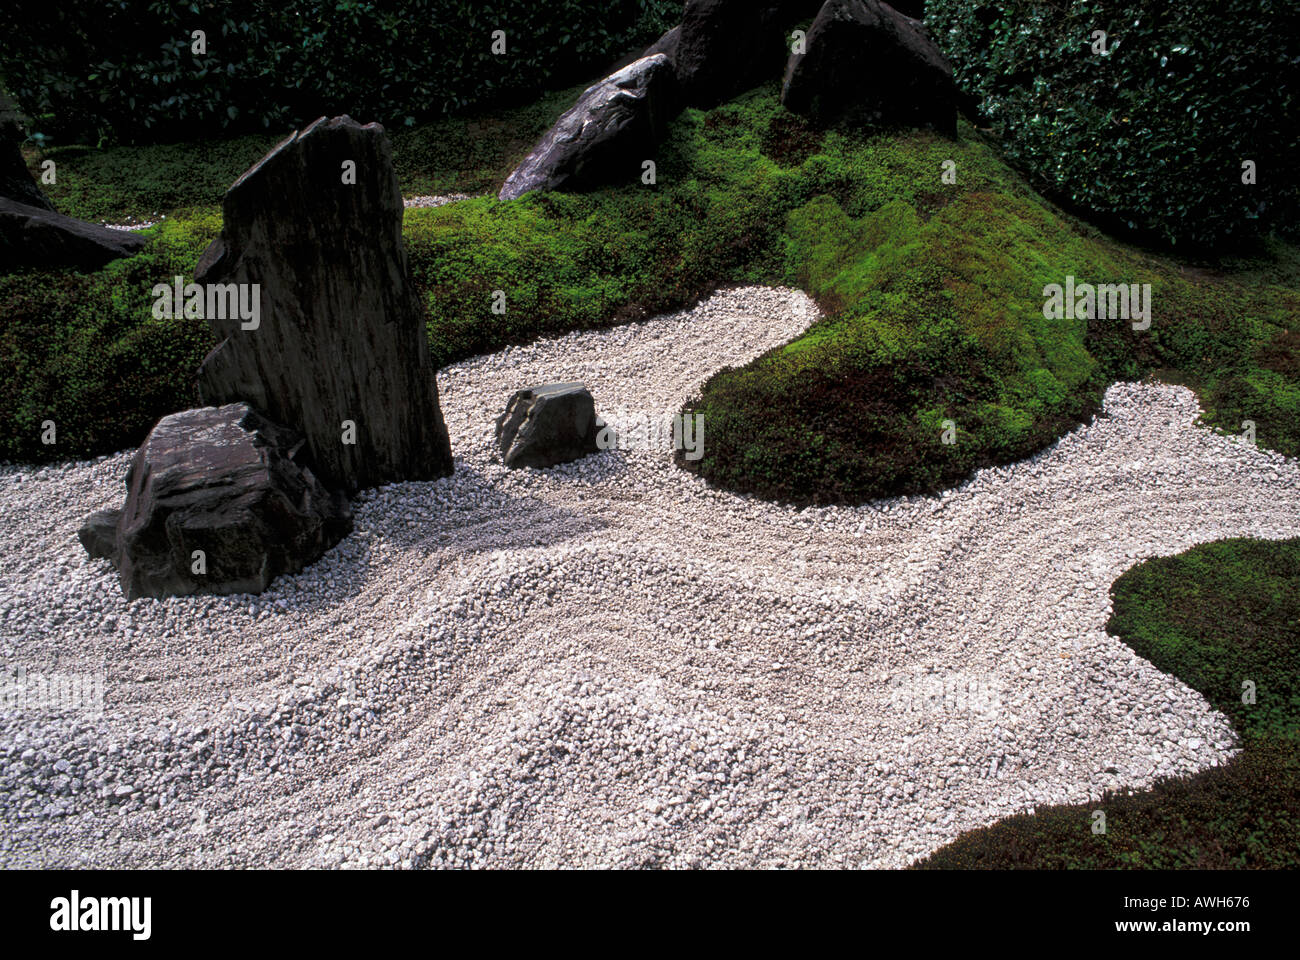 Genial Rock Gravel And Moss Are The Main Components Of The Zen ...